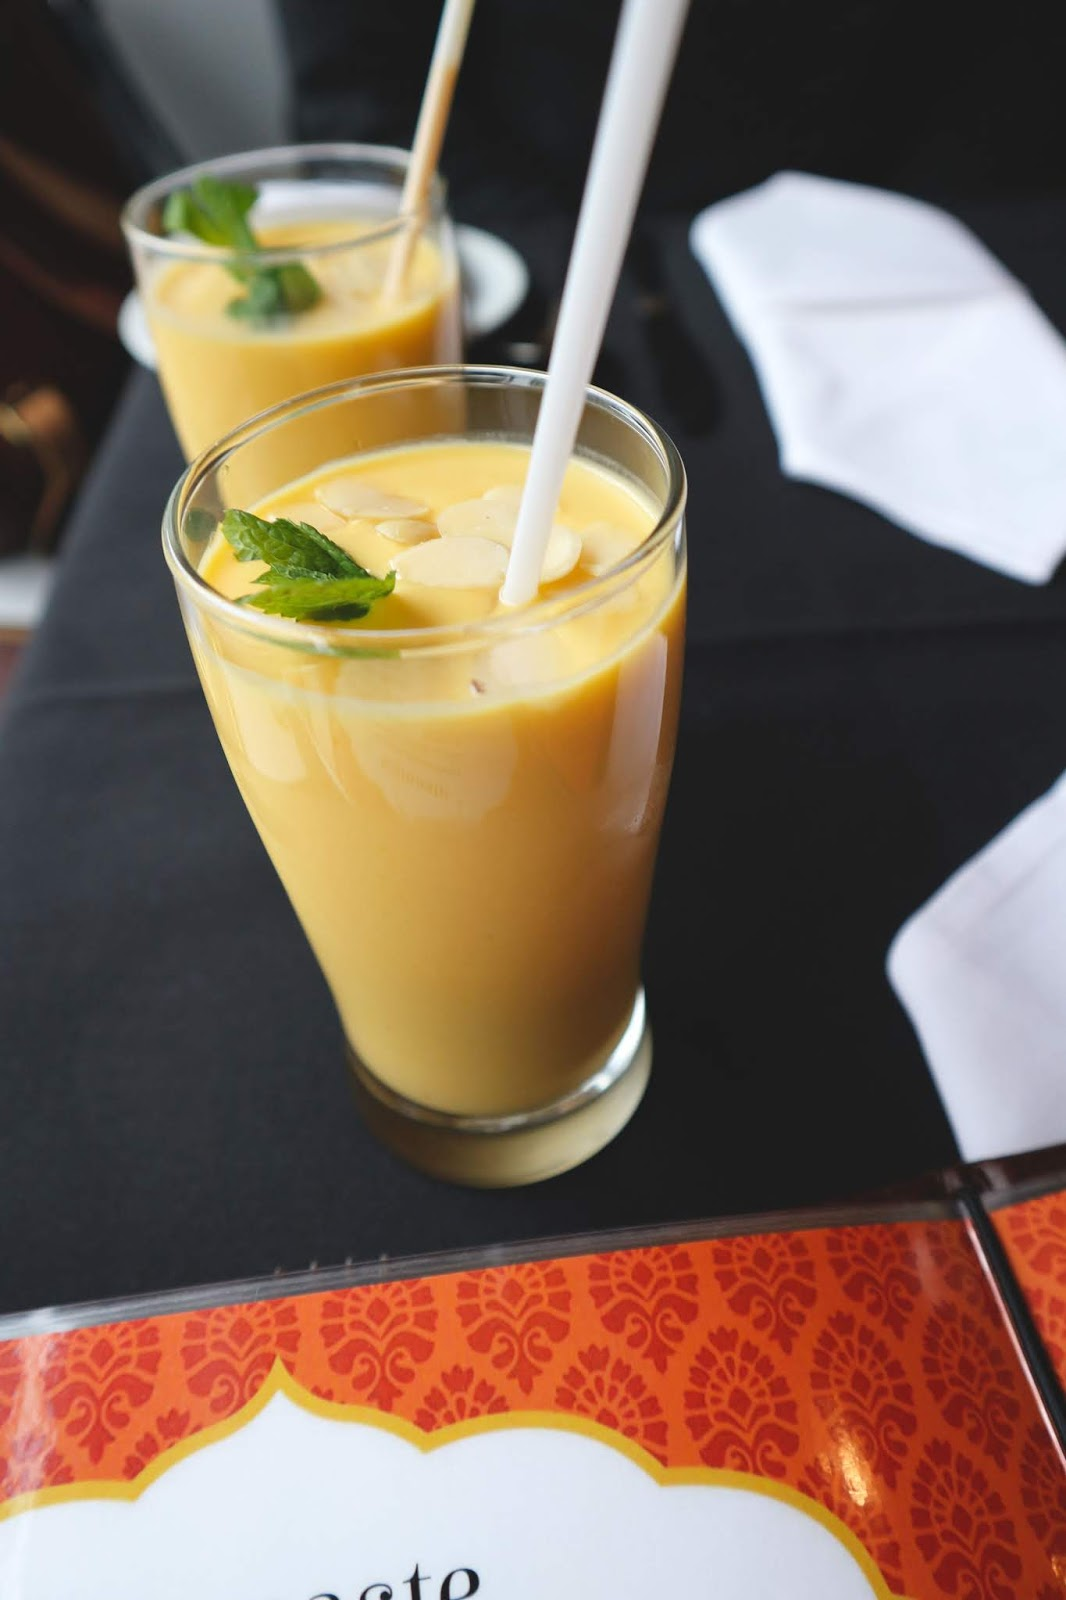 Namaste Kingston - New Indian Restaurant - Mango Lassi